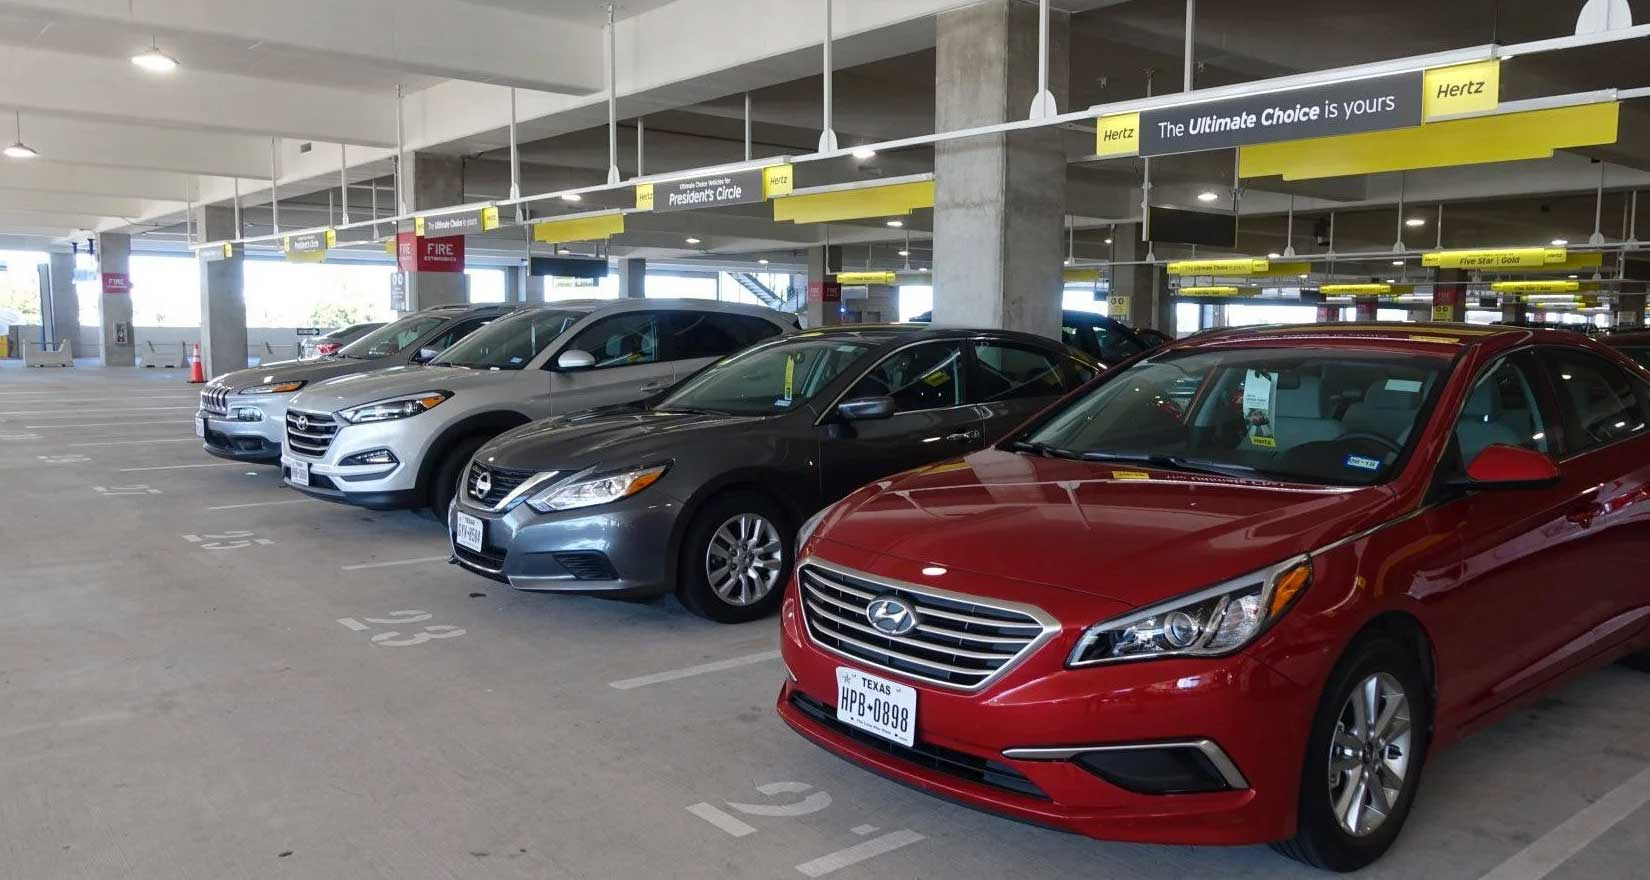 Rental cars lined up in a parking garage.